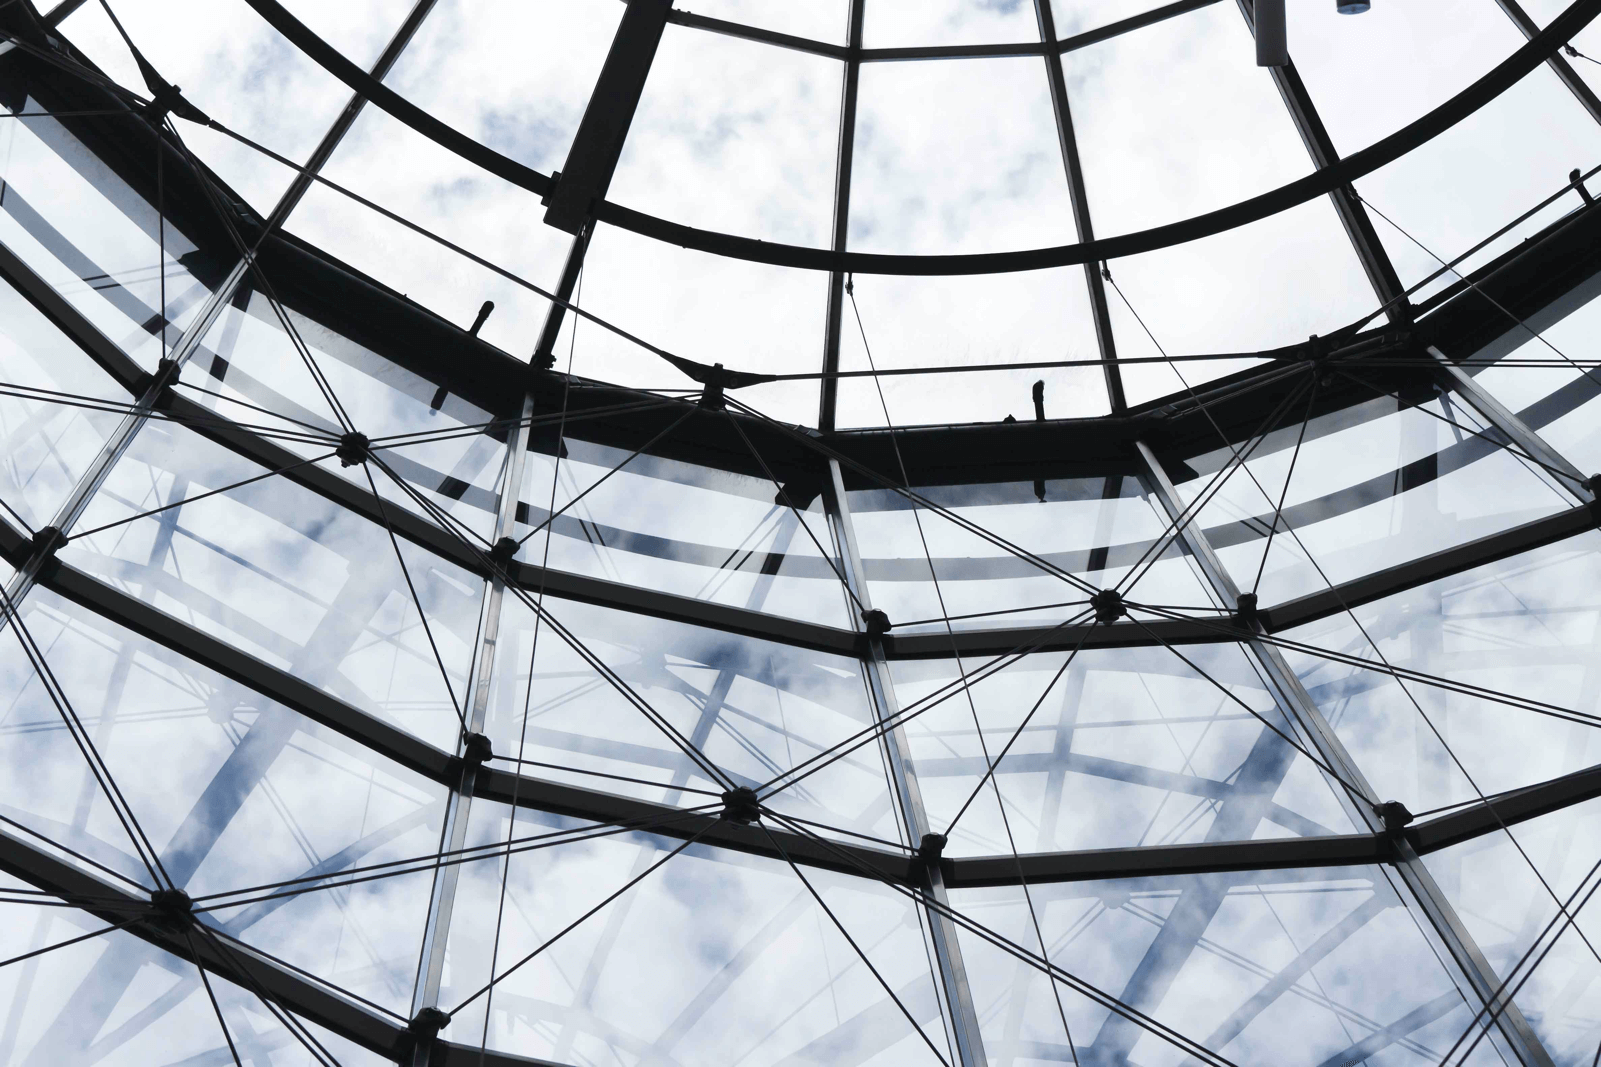 Photo taken from the inside of dome-shaped roof made of glass